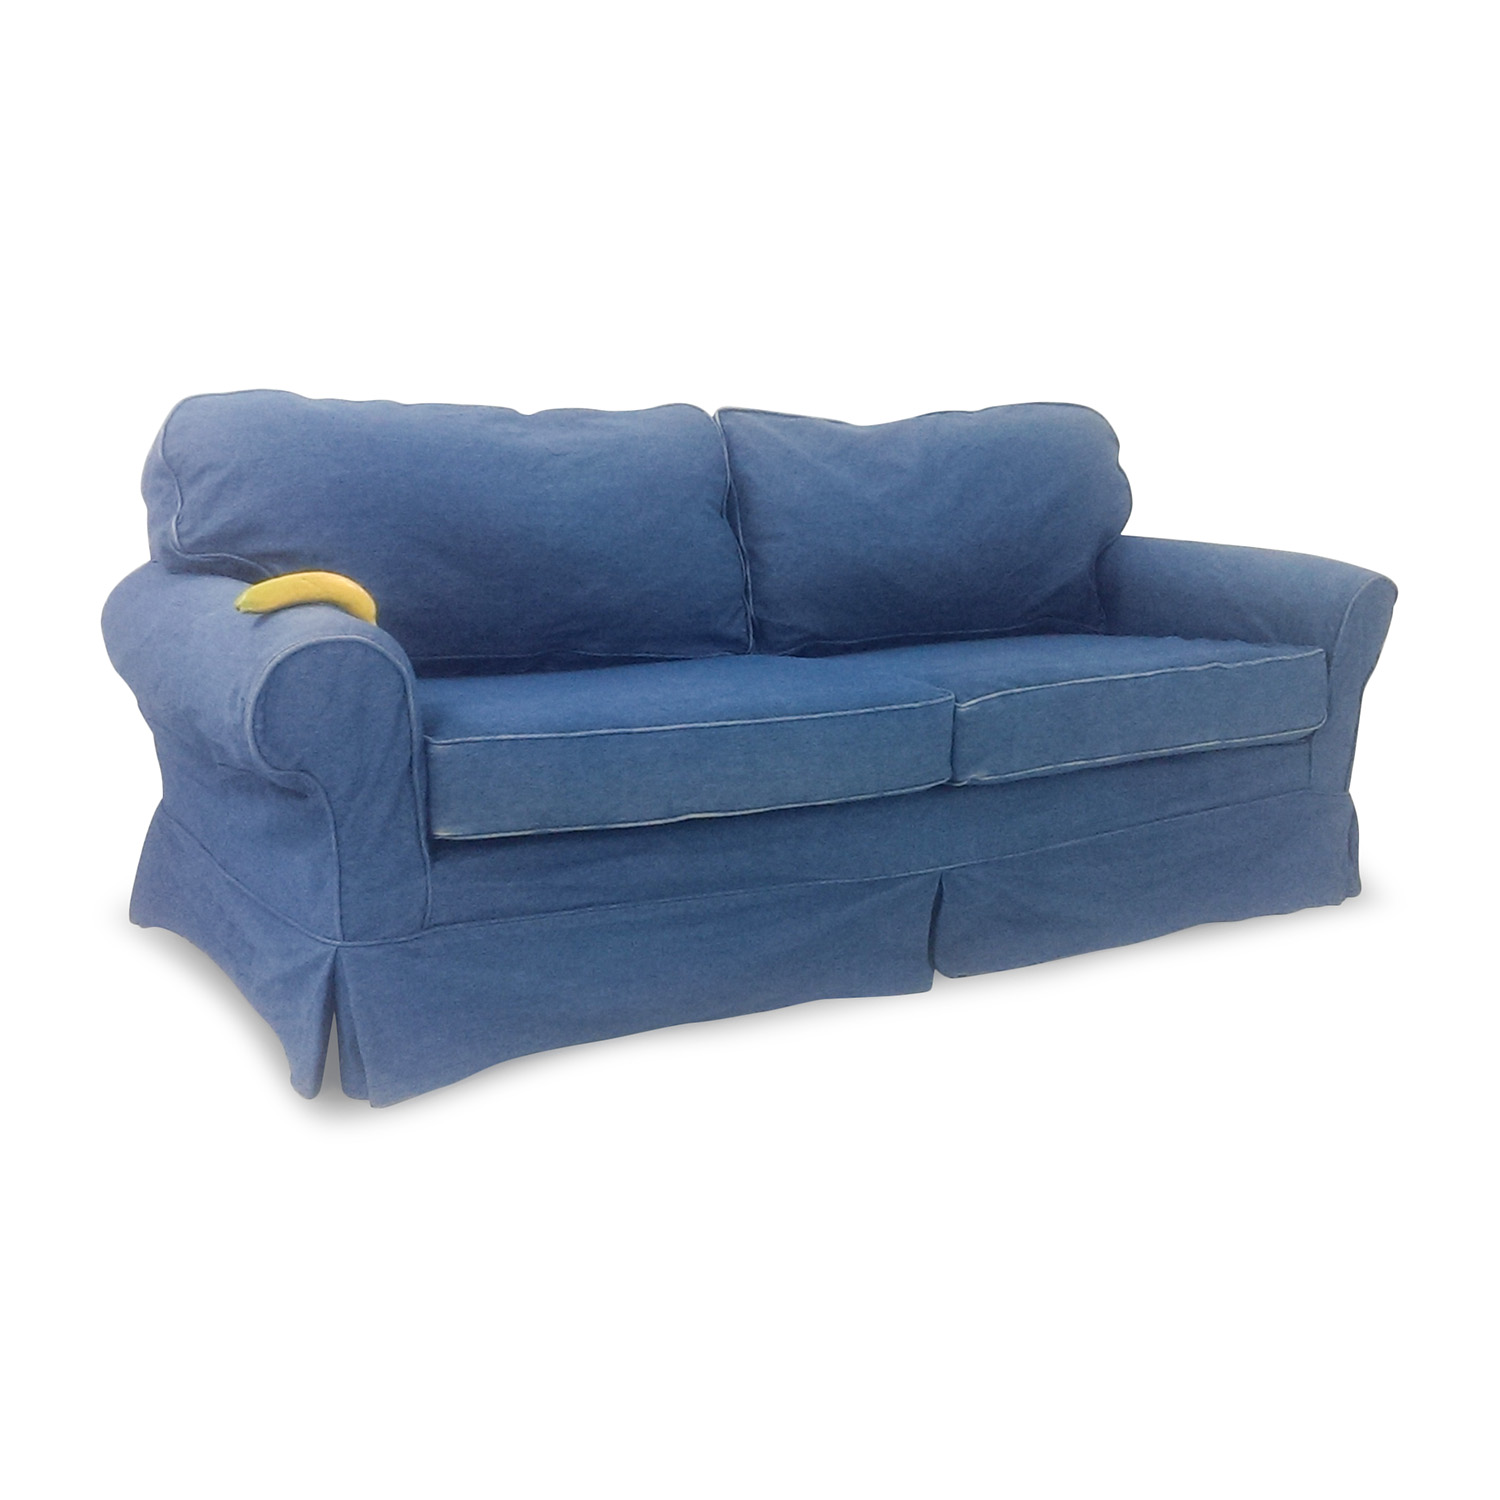 Used Couches For Sale >> 78% OFF - Blue Denim Couch / Sofas